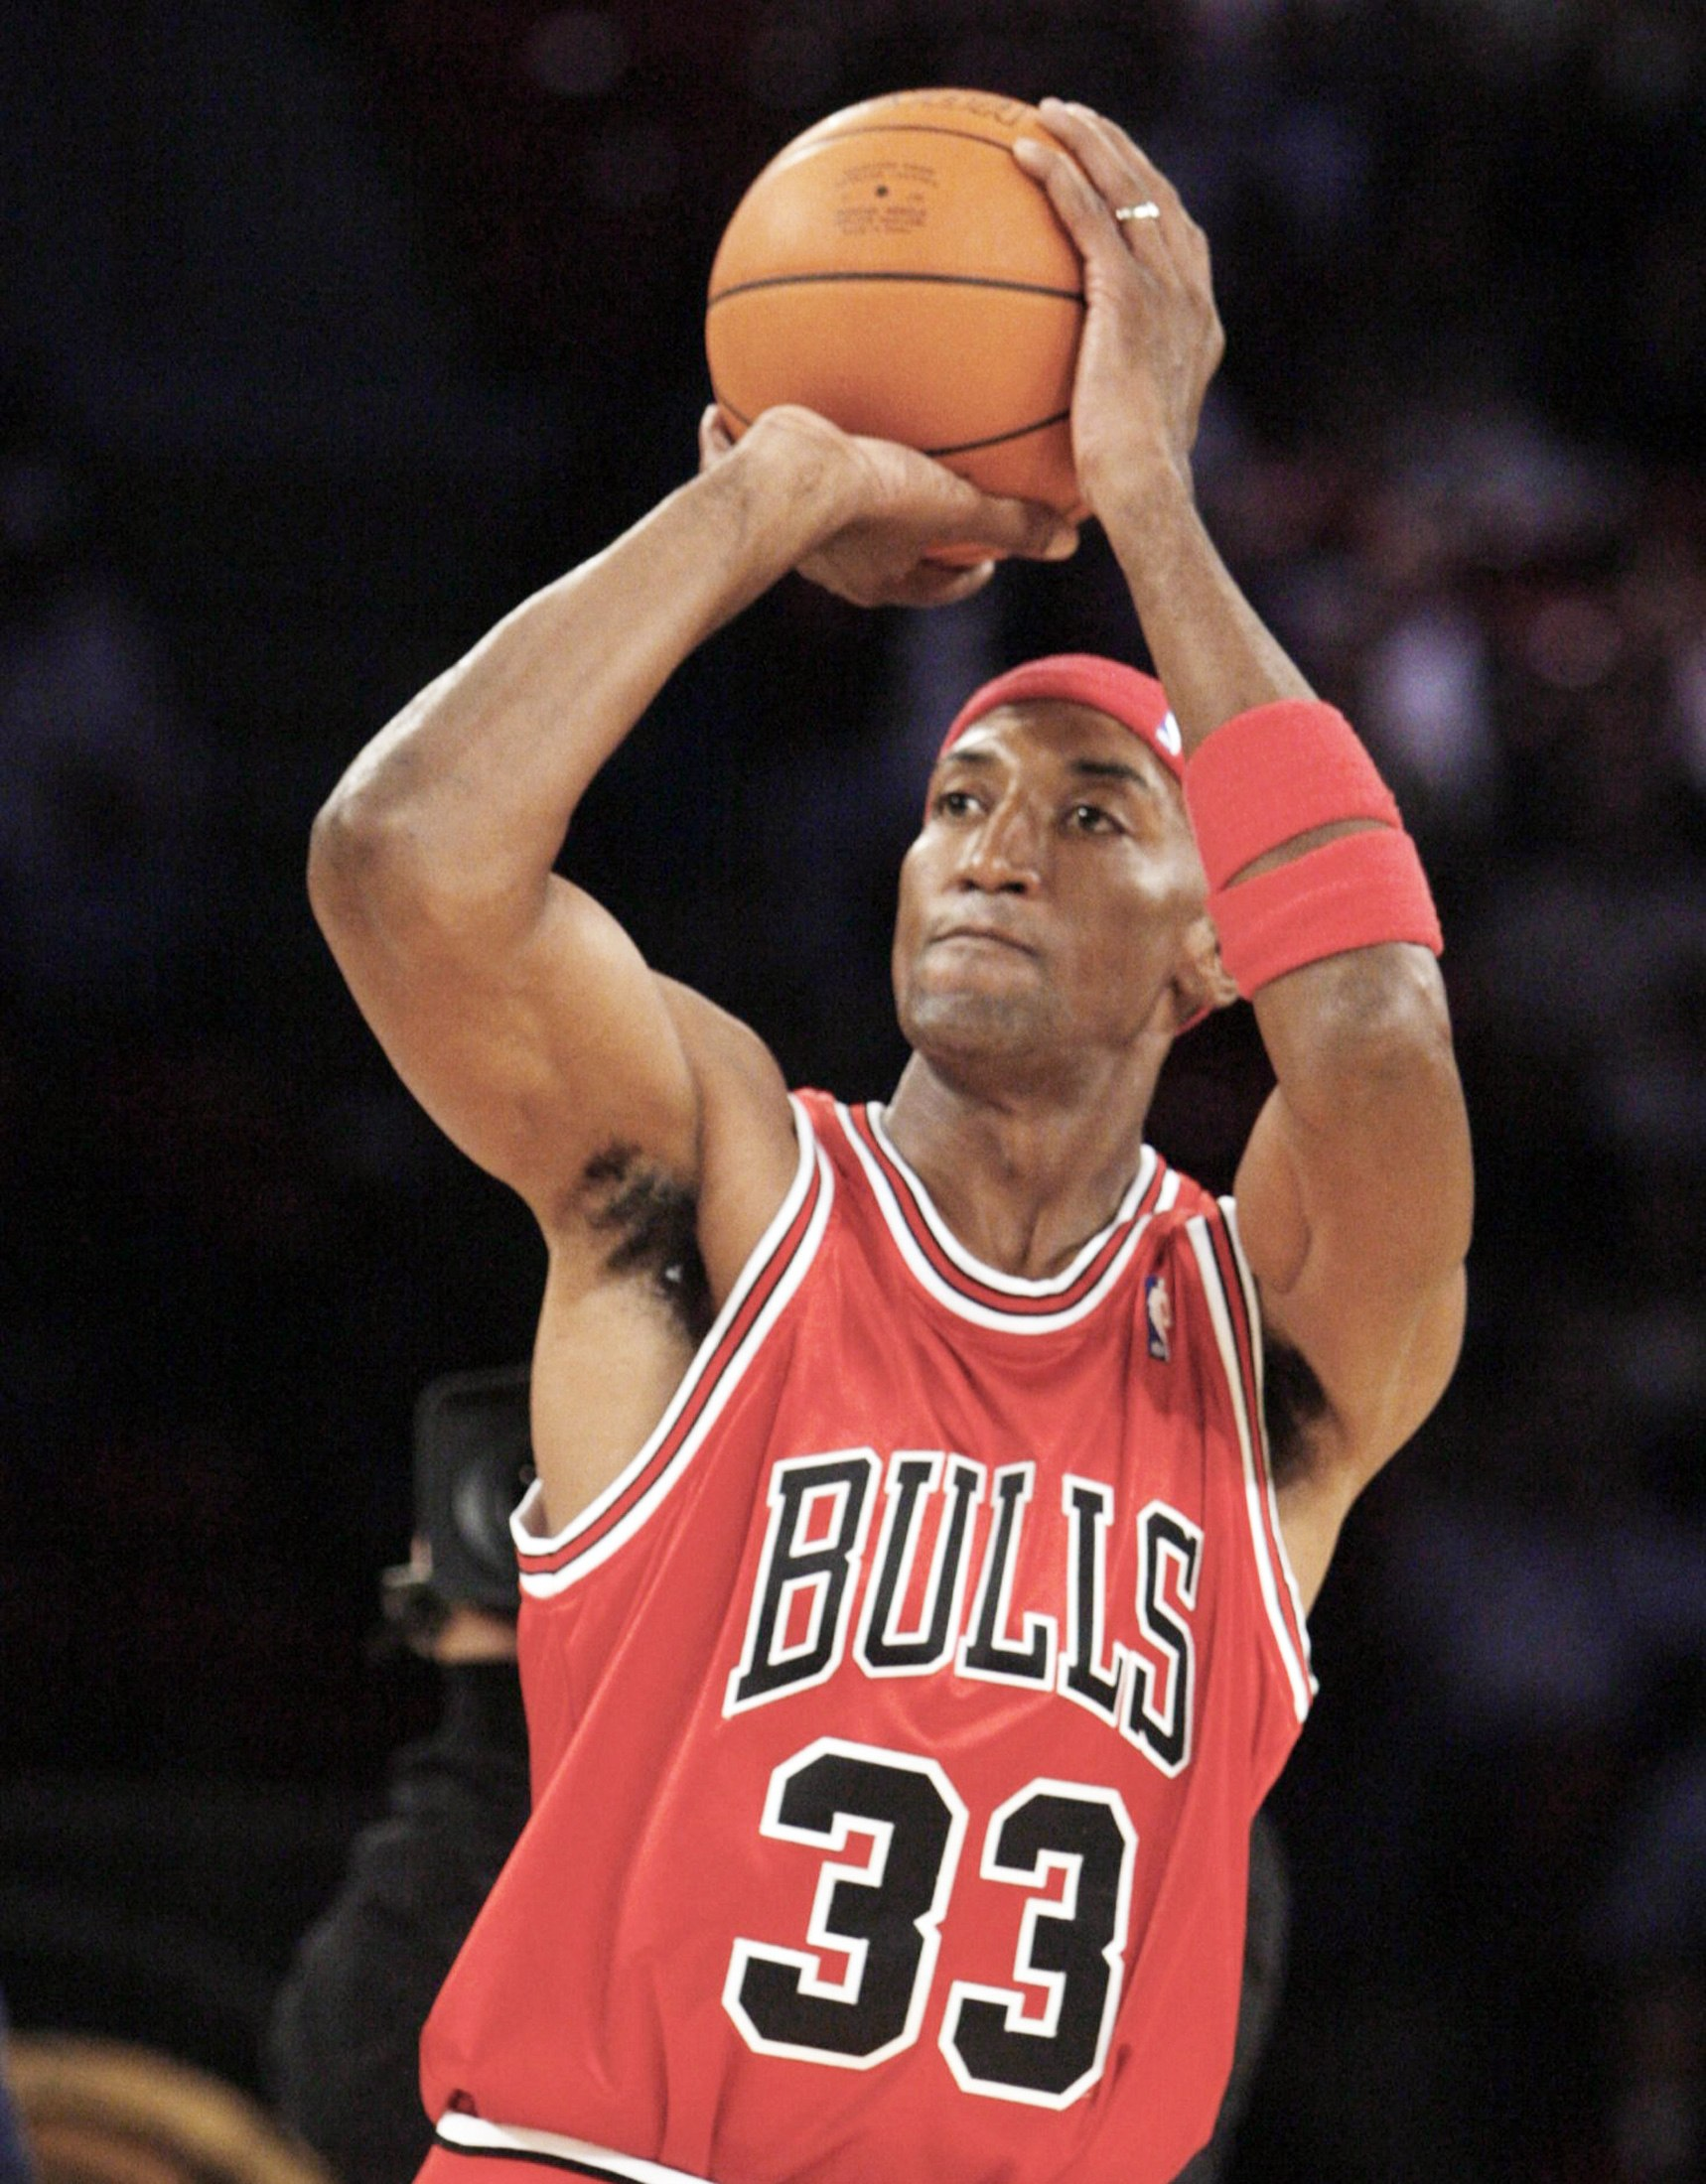 Former Chicago Bull Scottie Pippen shoots during the skills challenge event at the NBA All-Star weekend in Las Vegas February 17, 2007.  REUTERS/Lucy Nicholson (UNITED STATES) - GM1DUQENSUAA